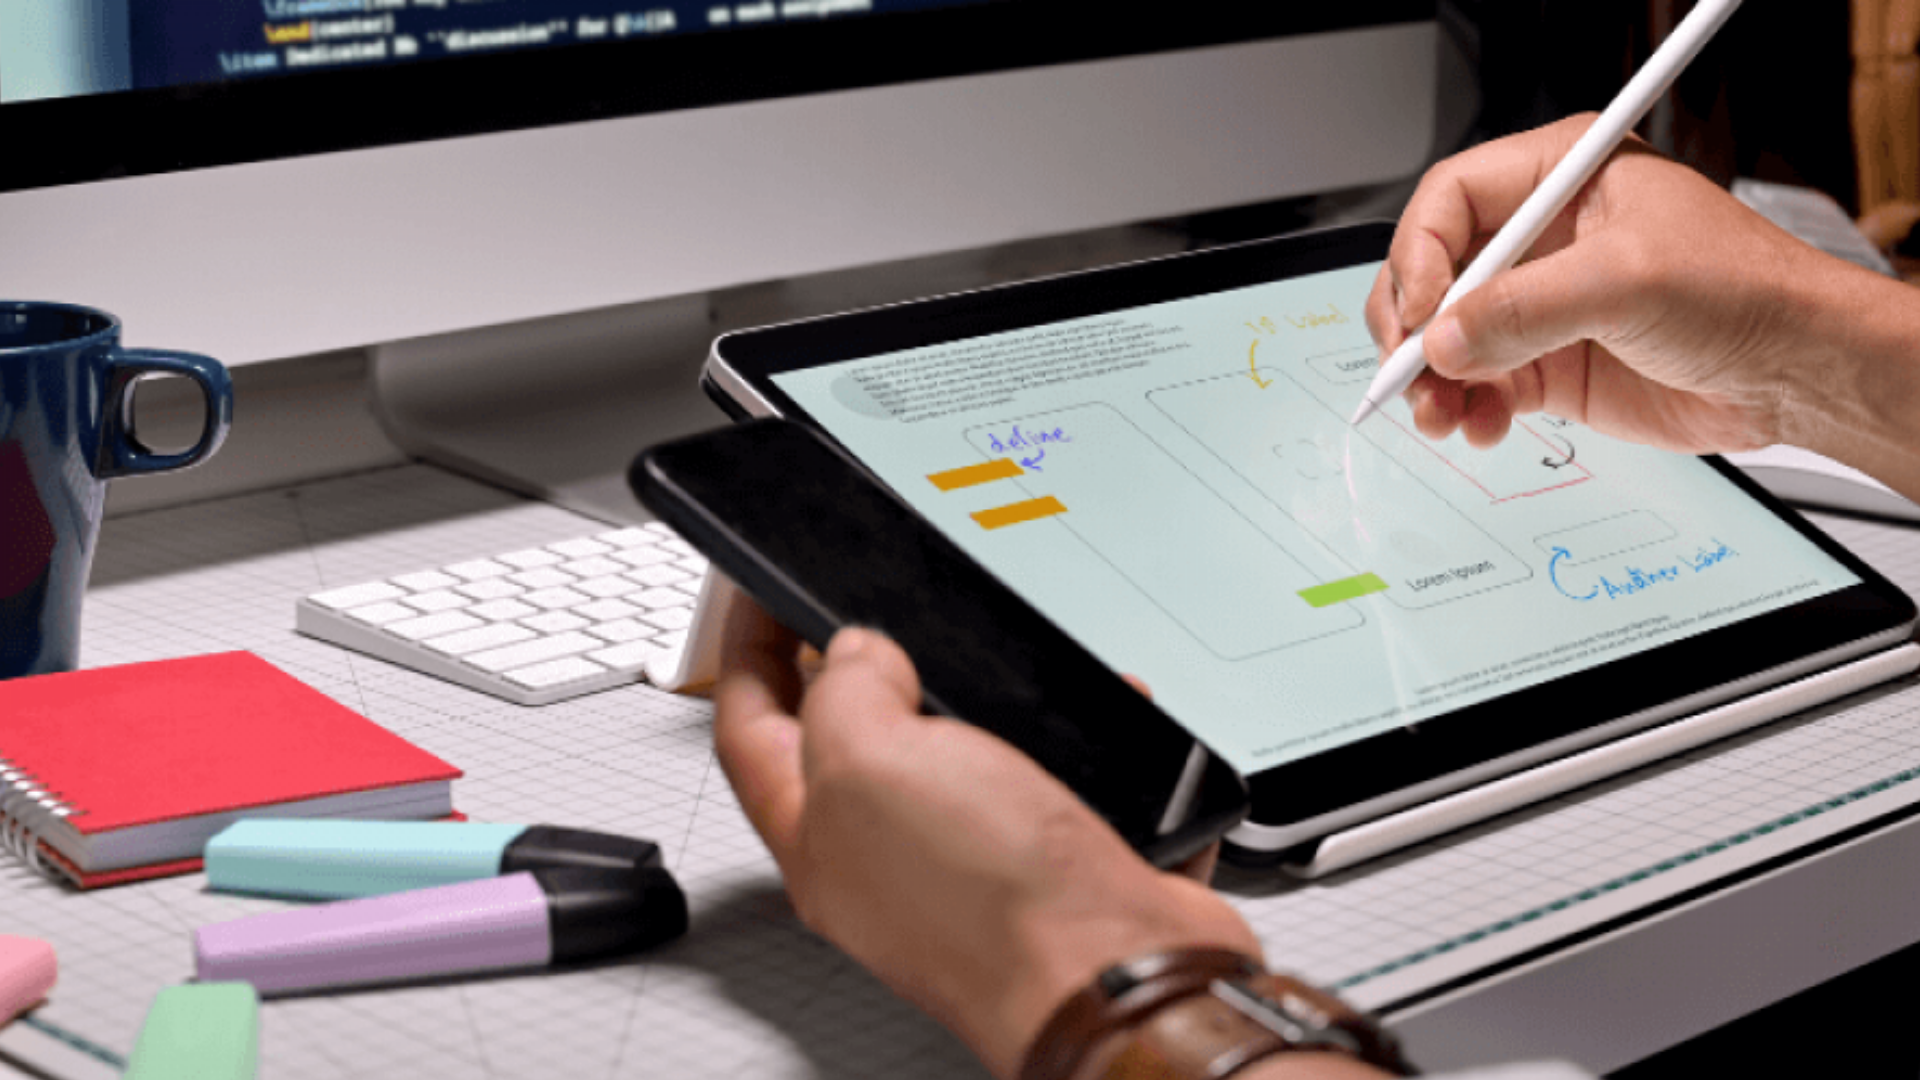 How Electronic Signatures Help Five Major Areas of Business